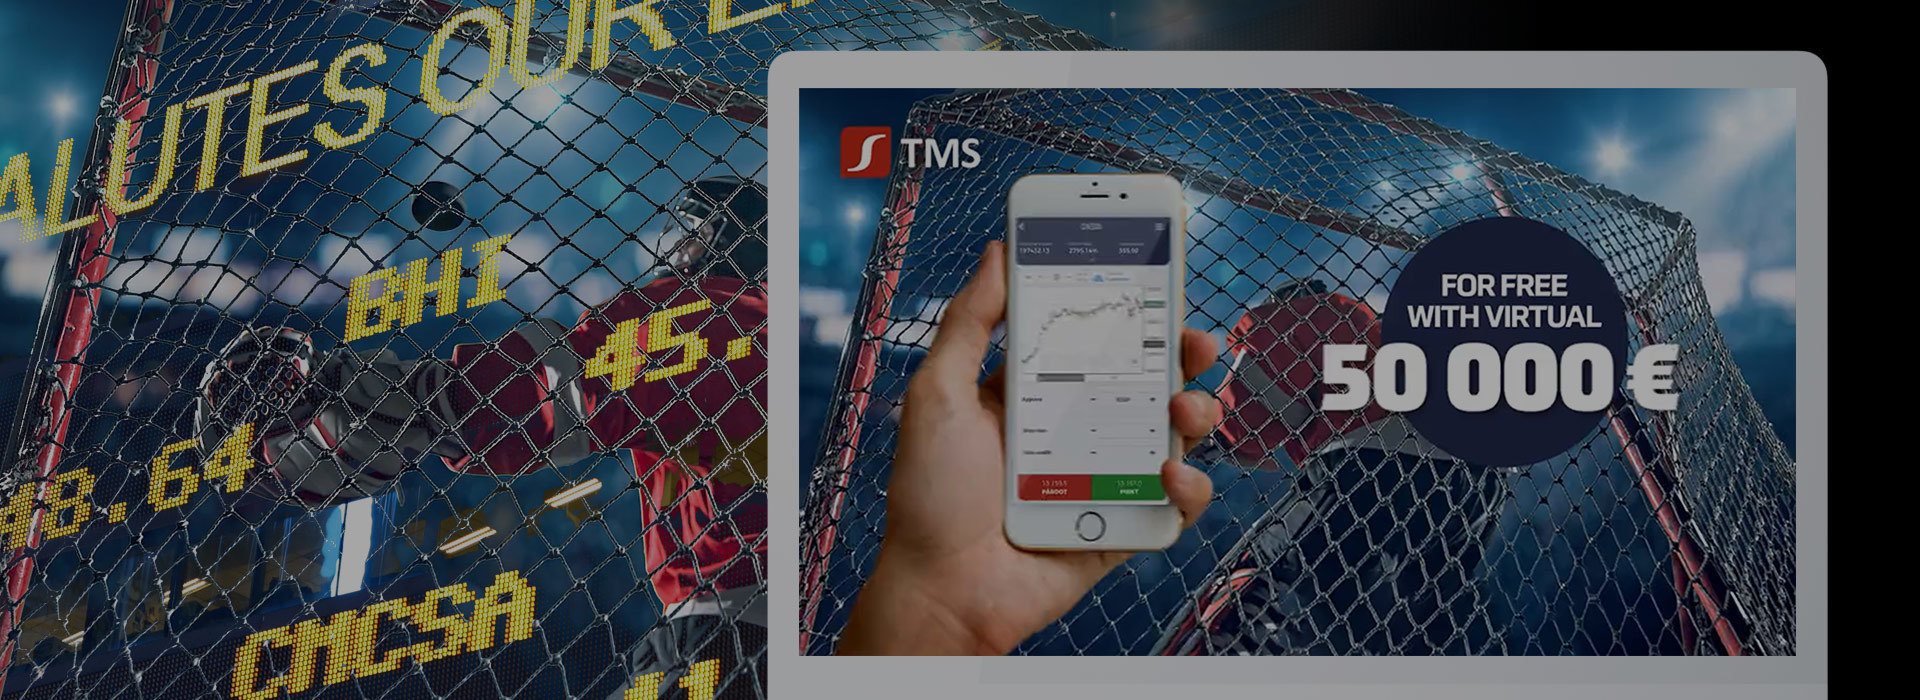 TV commercials of TMS Europe for the Baltics markets.